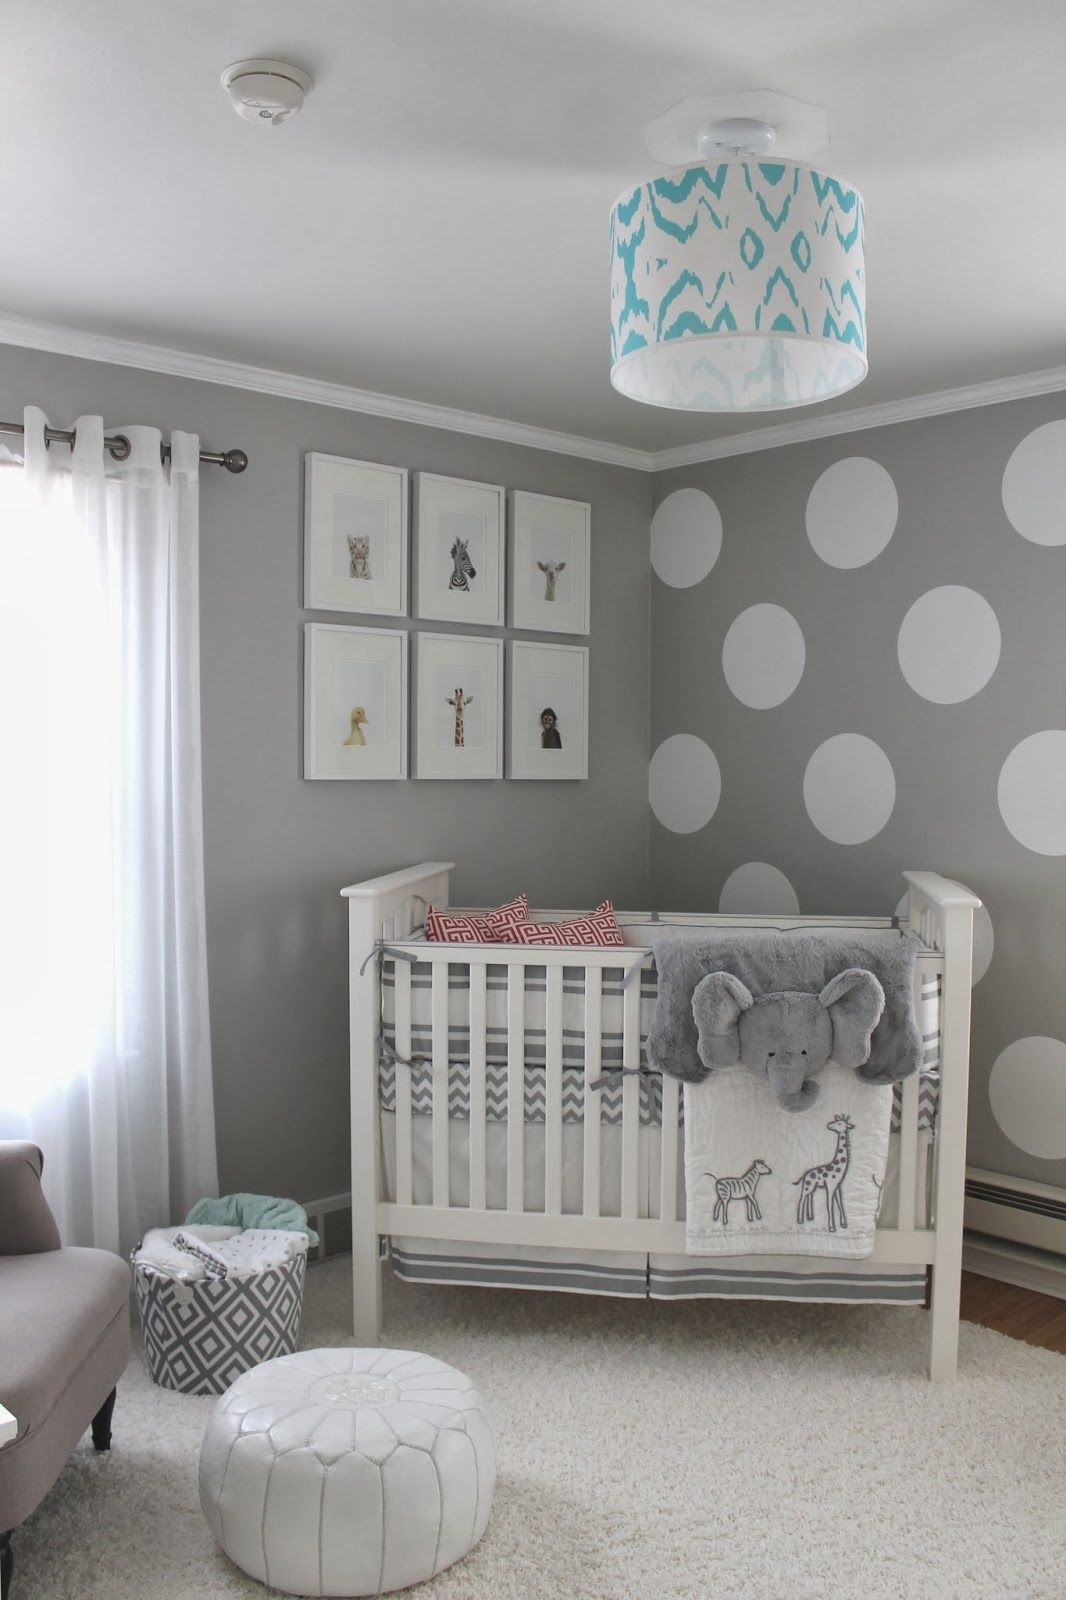 Gray baby room pictures photos and images for facebook for Decoration chambre de bebe unisex